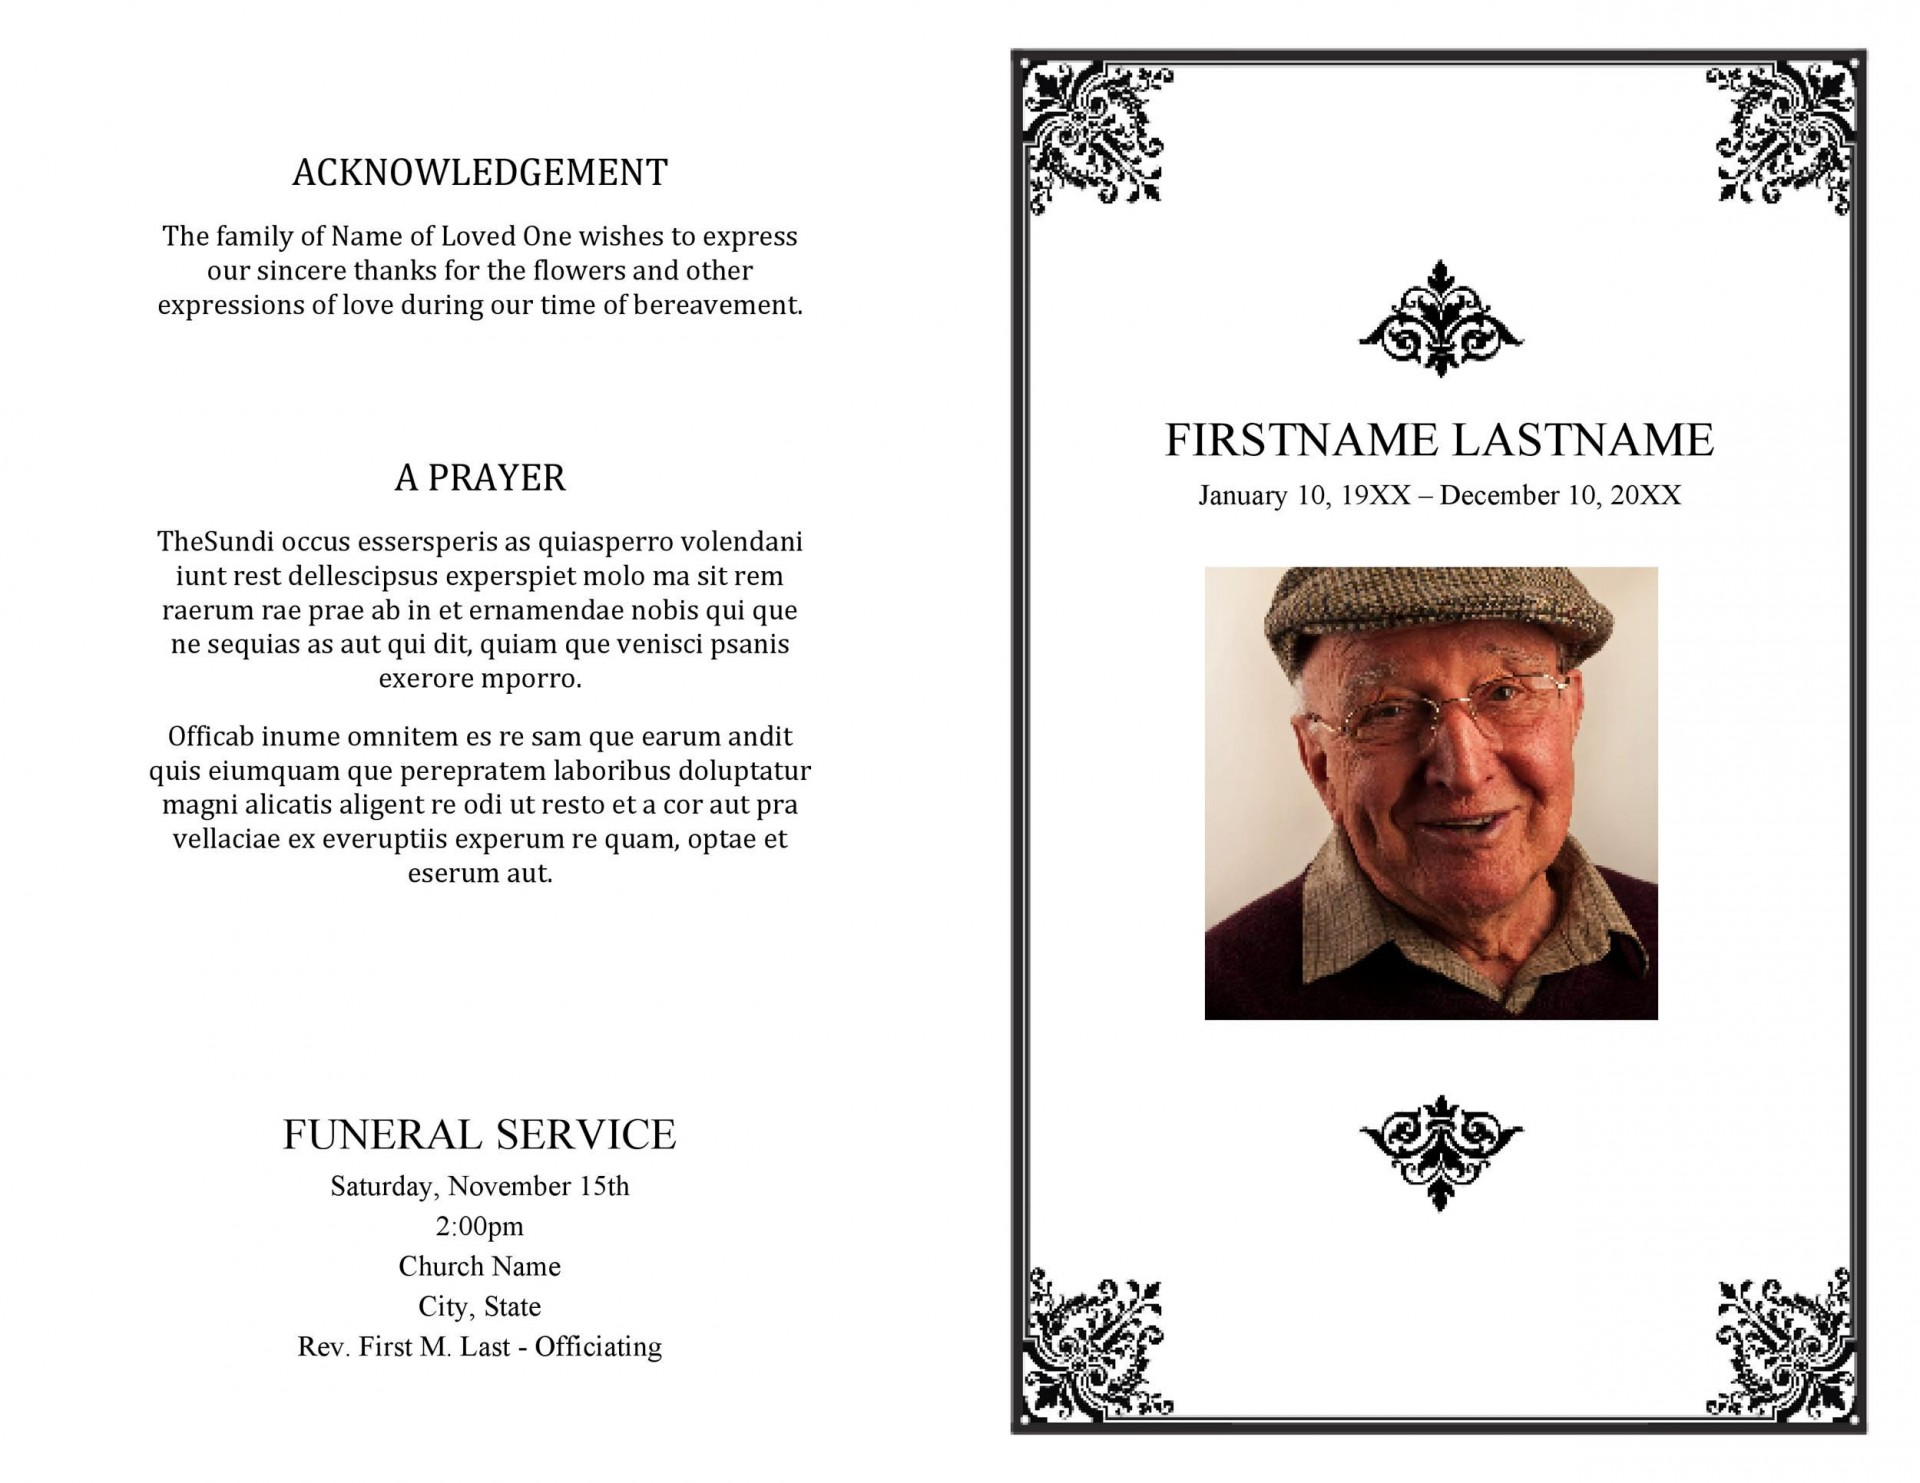 006 Marvelou Free Memorial Service Program Template High Definition  Microsoft Word Funeral Download1920